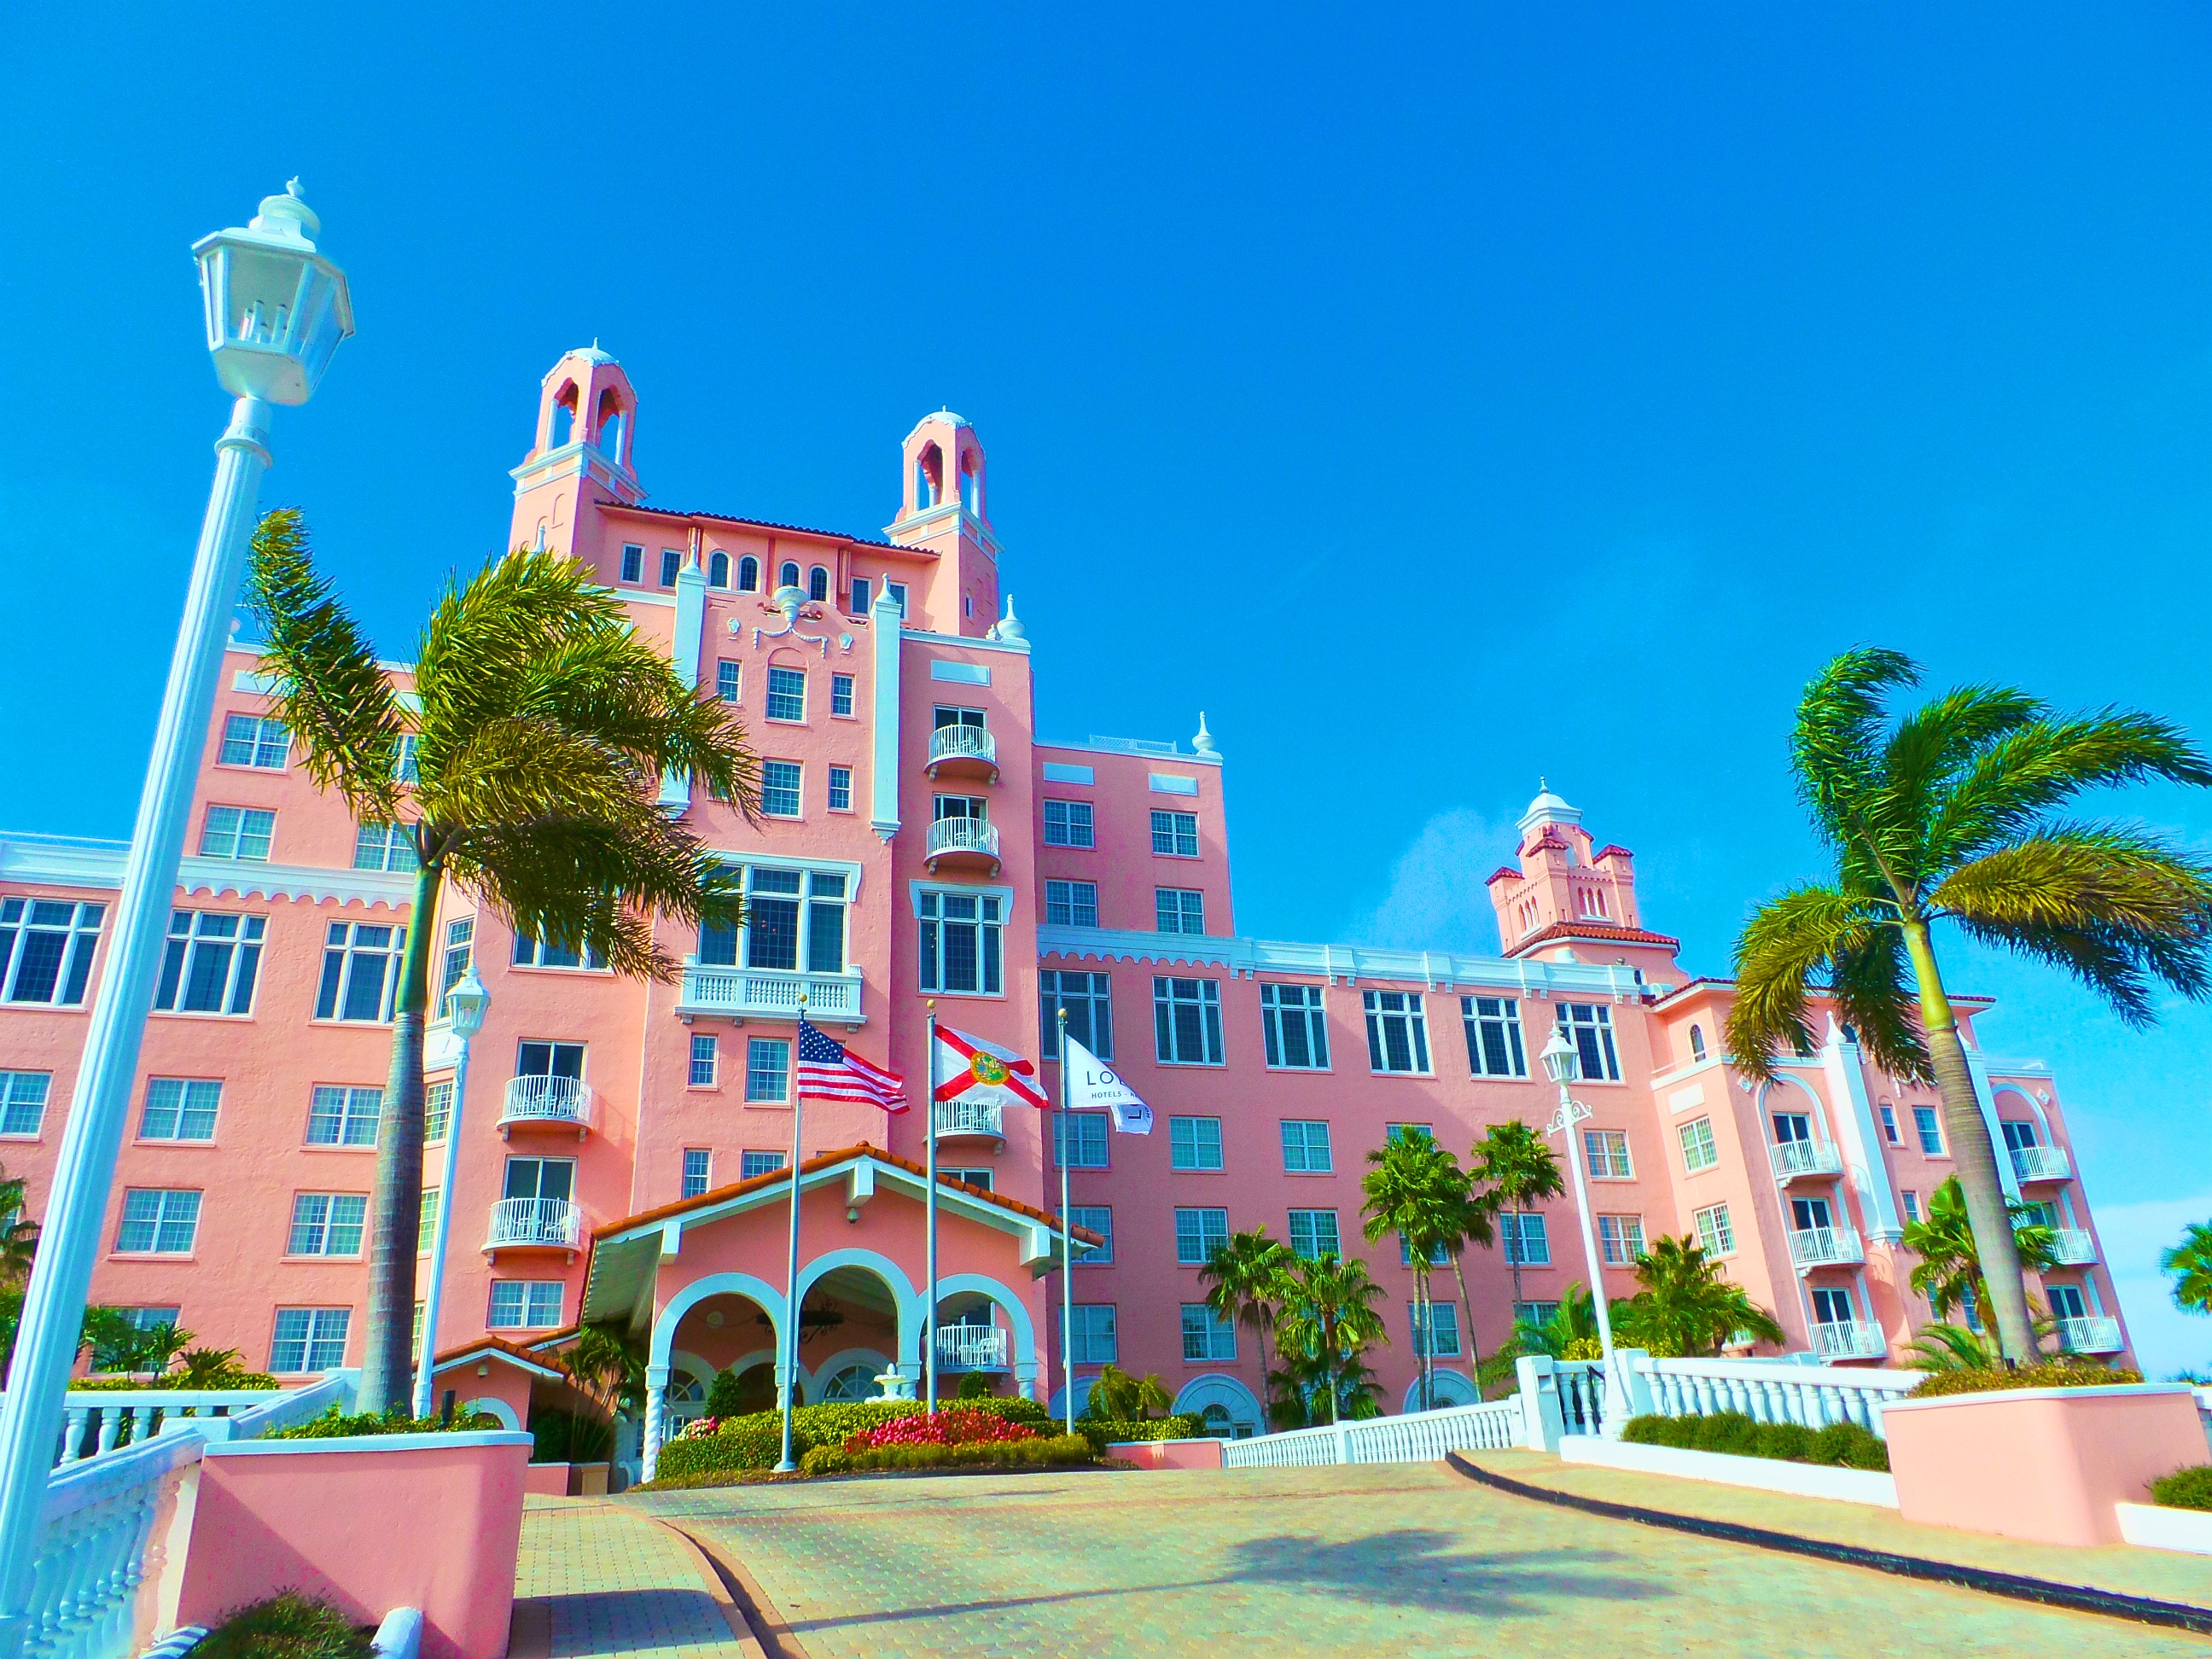 Loews Don Cesar On St Pete Beach By Kara Franker 5